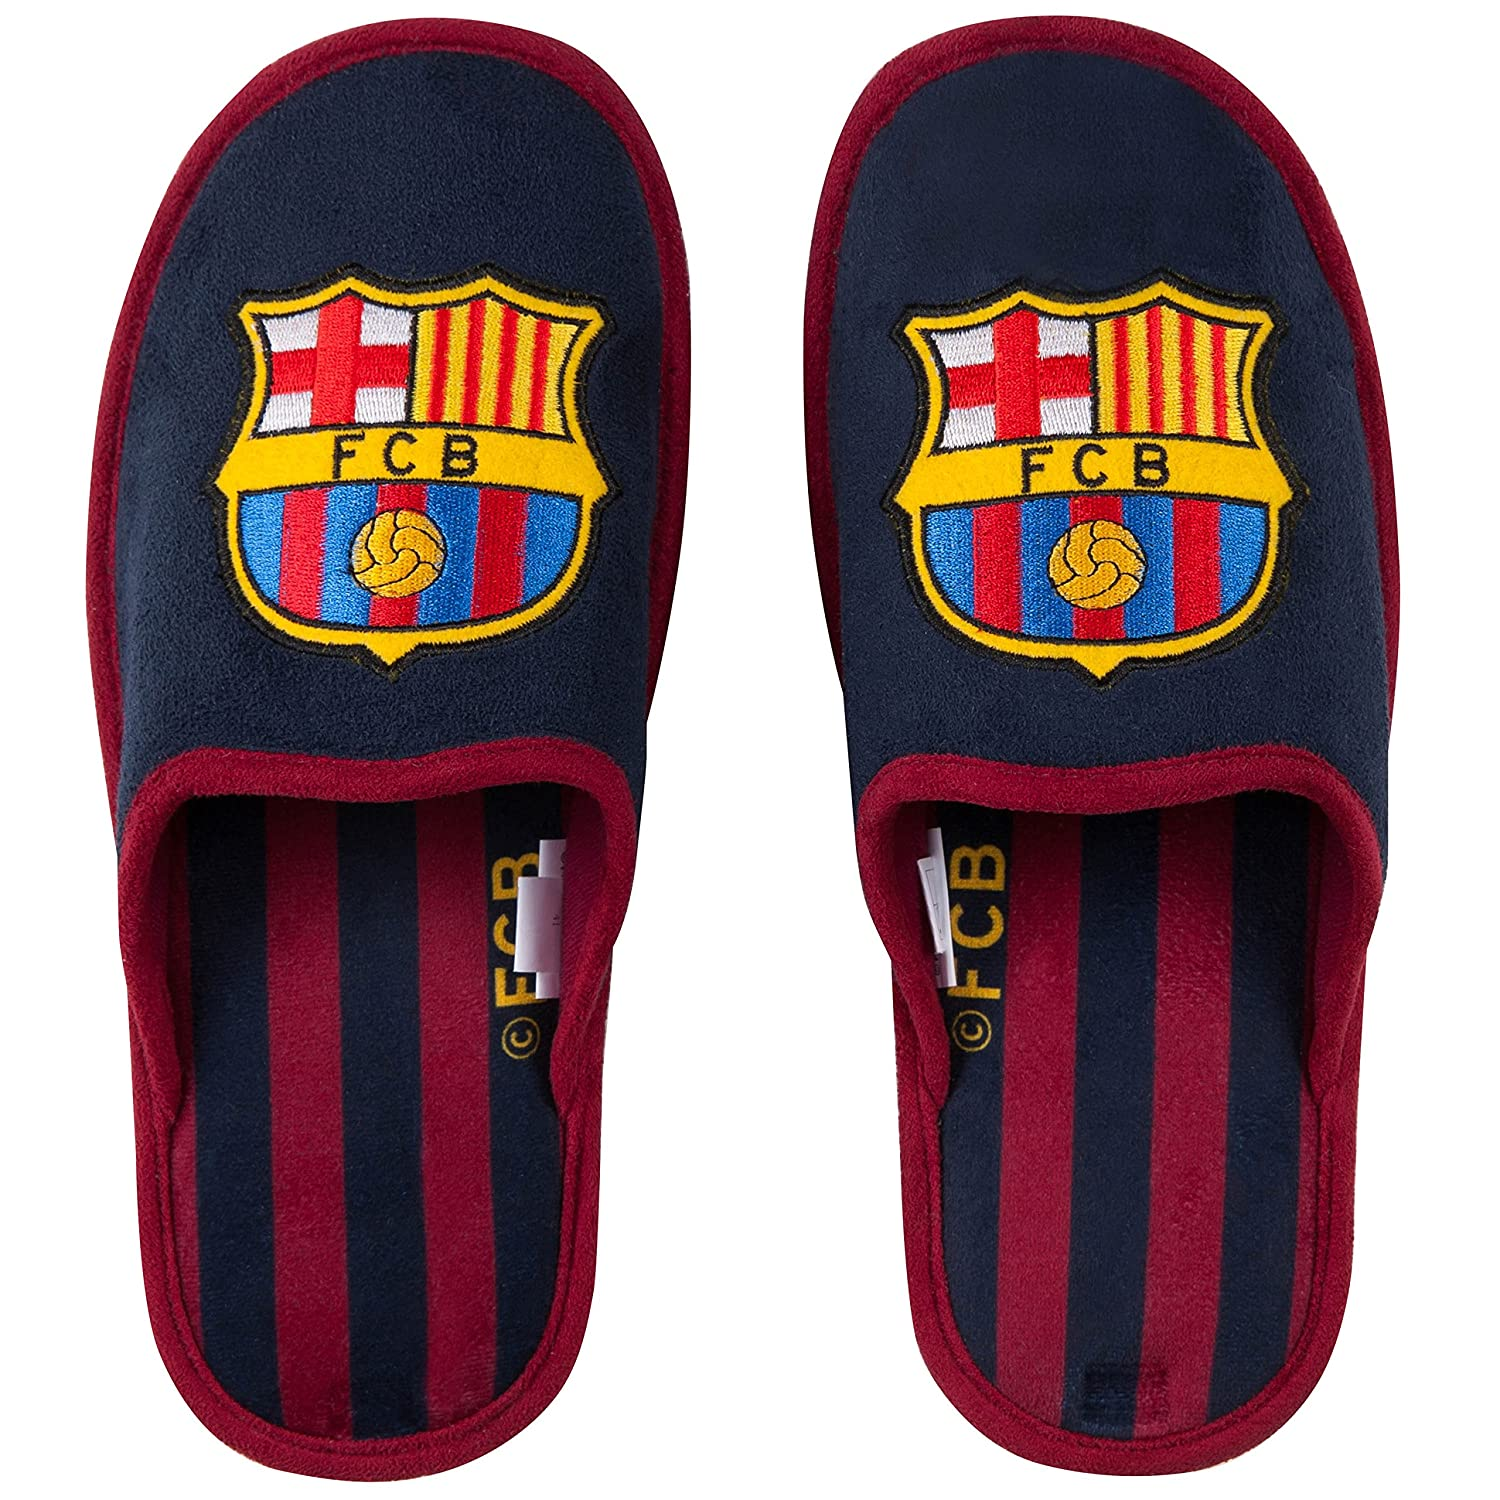 Collection Officielle Taille Adulte Homme Fc Barcelone Chaussons Barca